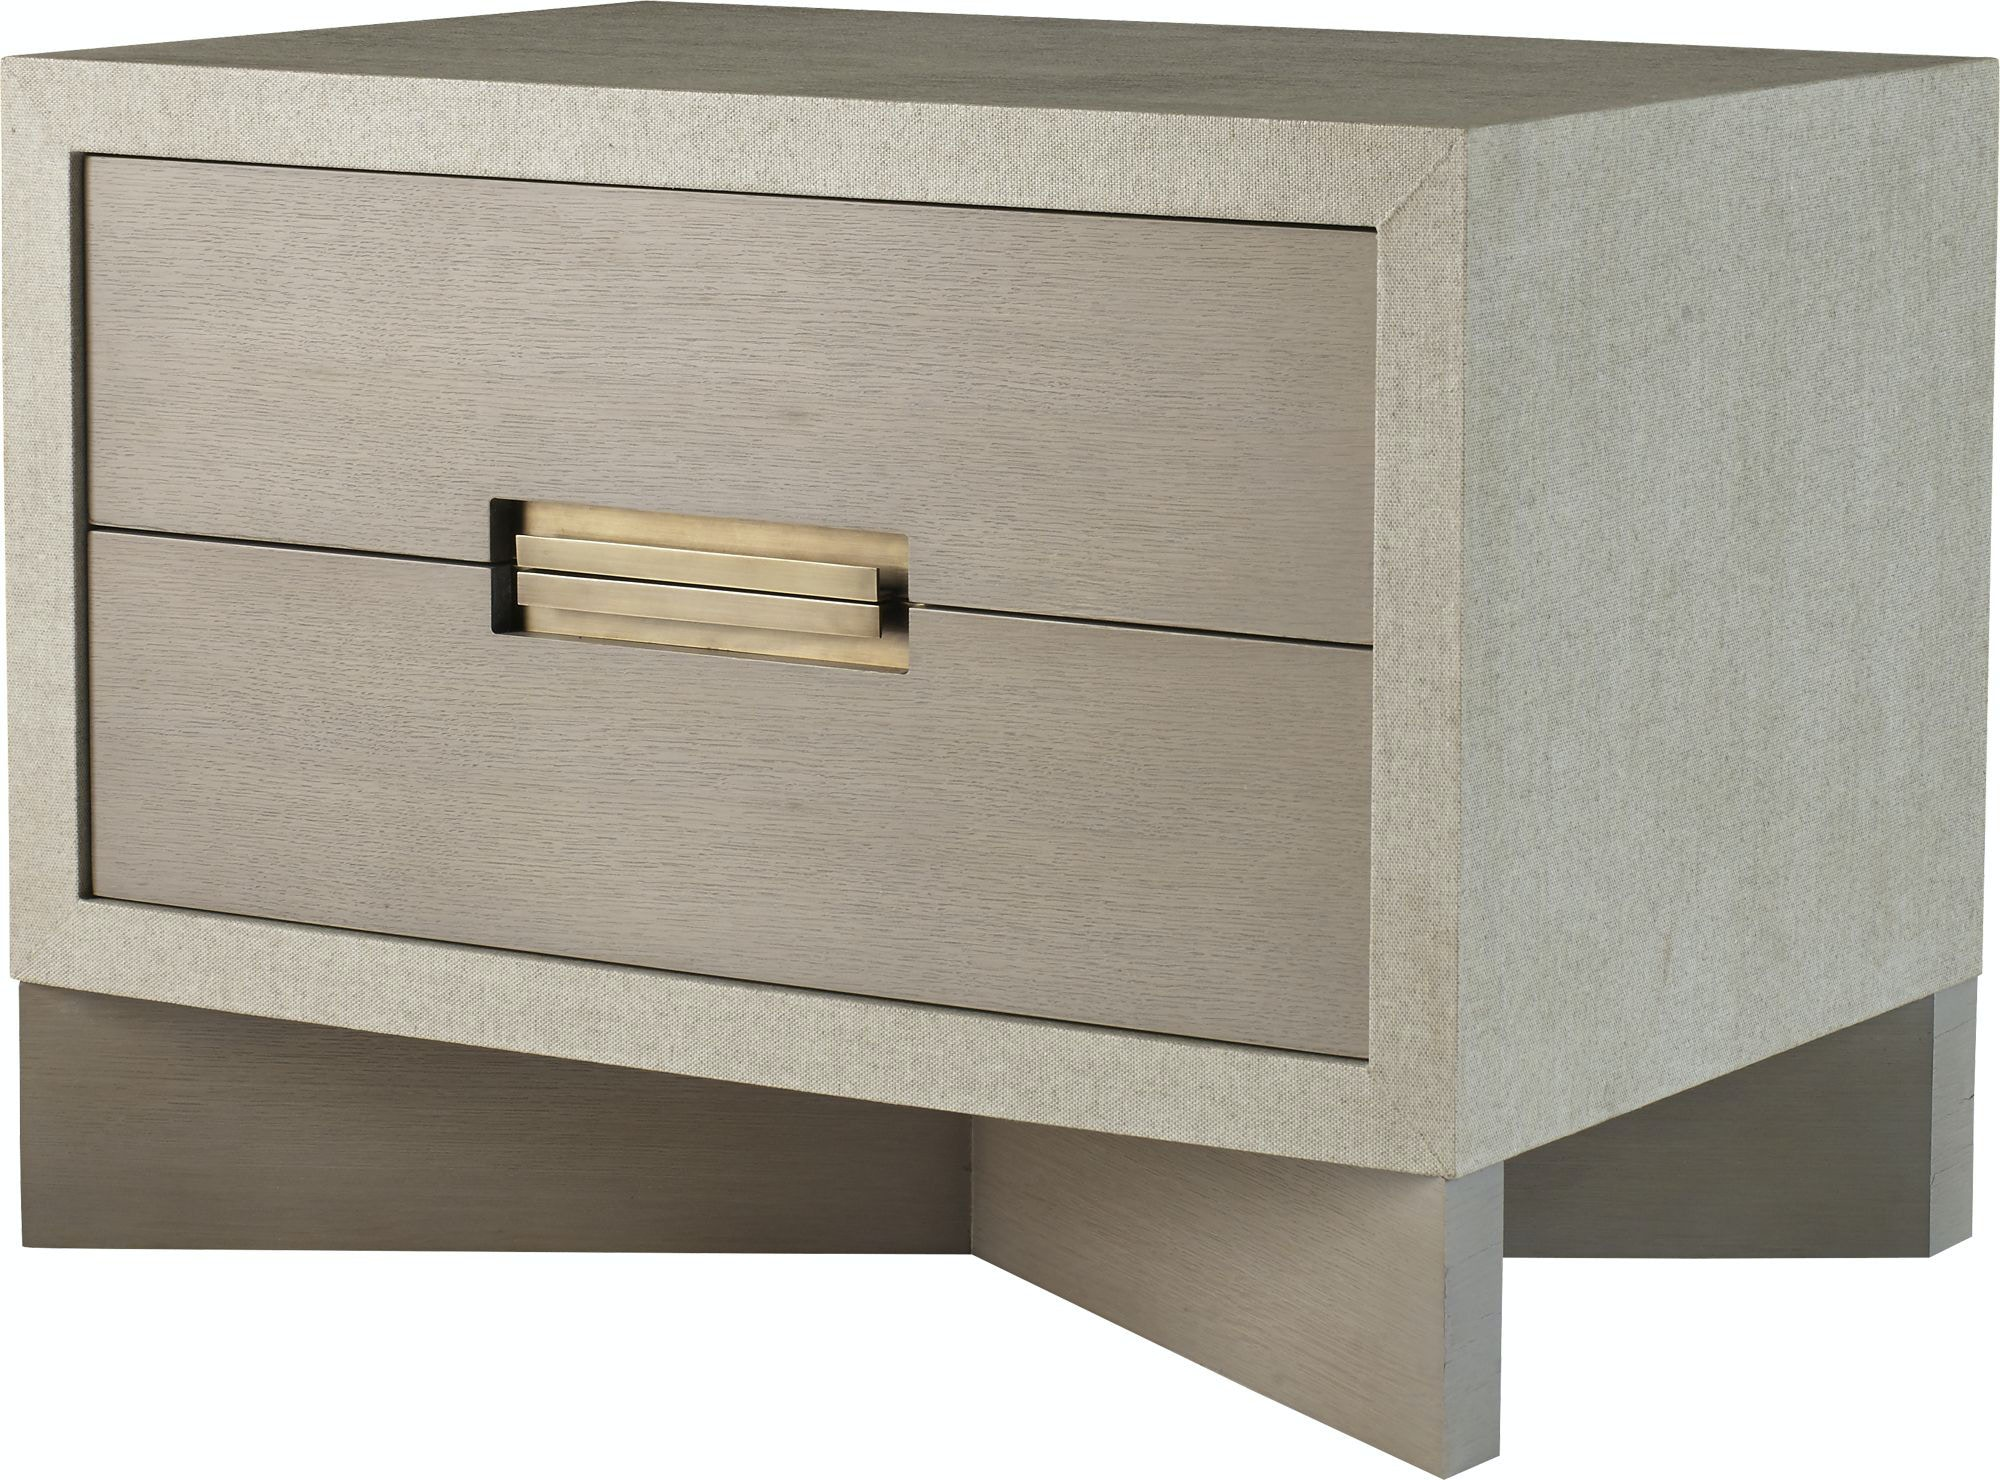 Great Baker Furniture Barbara Barry Kona Chest 3310